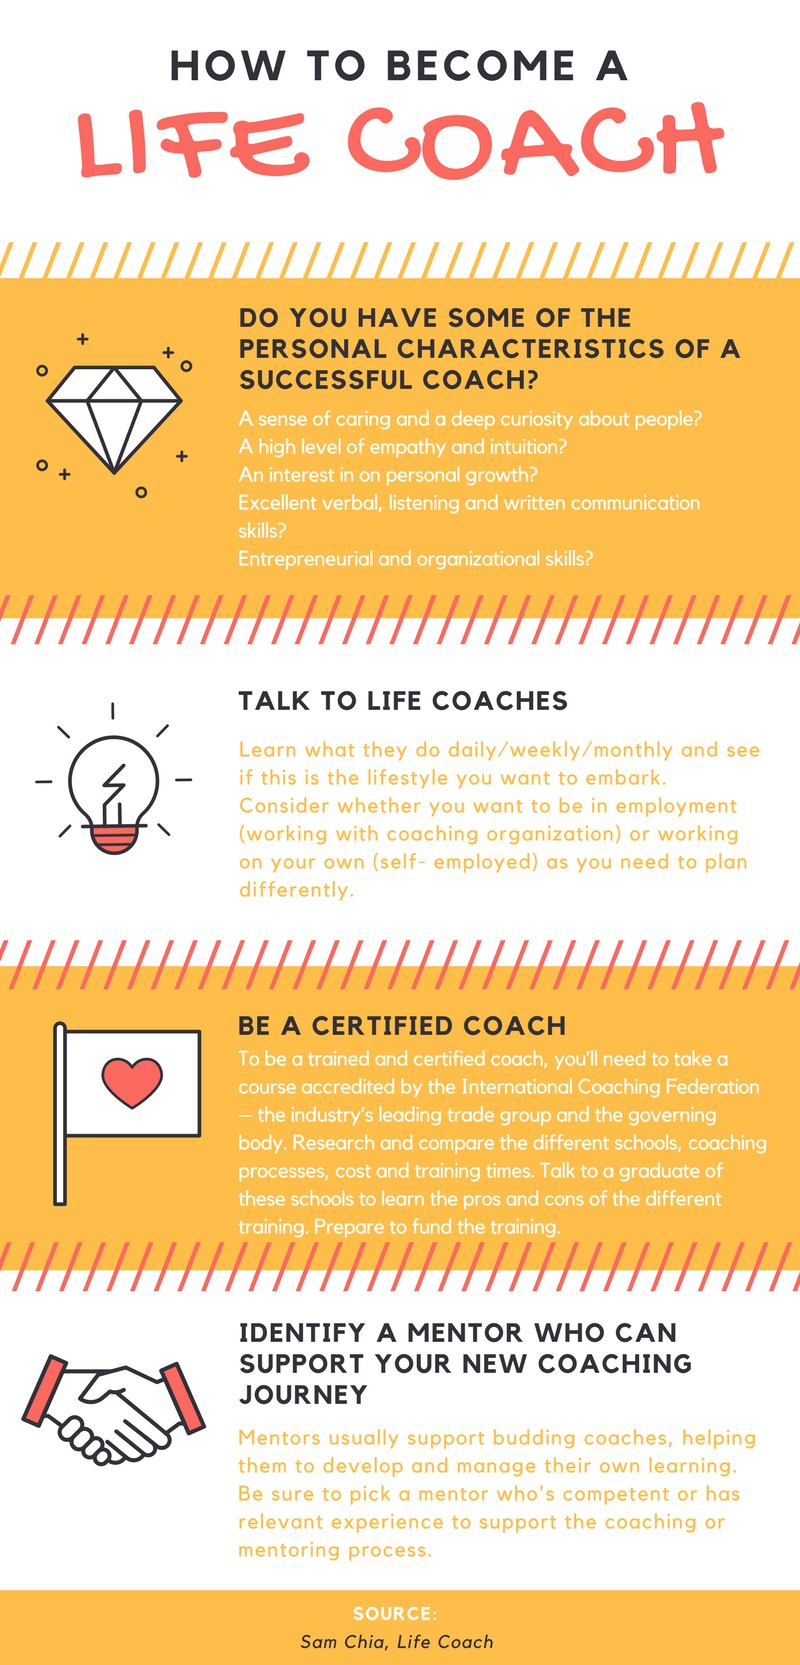 We share some advice on how to become a life coach